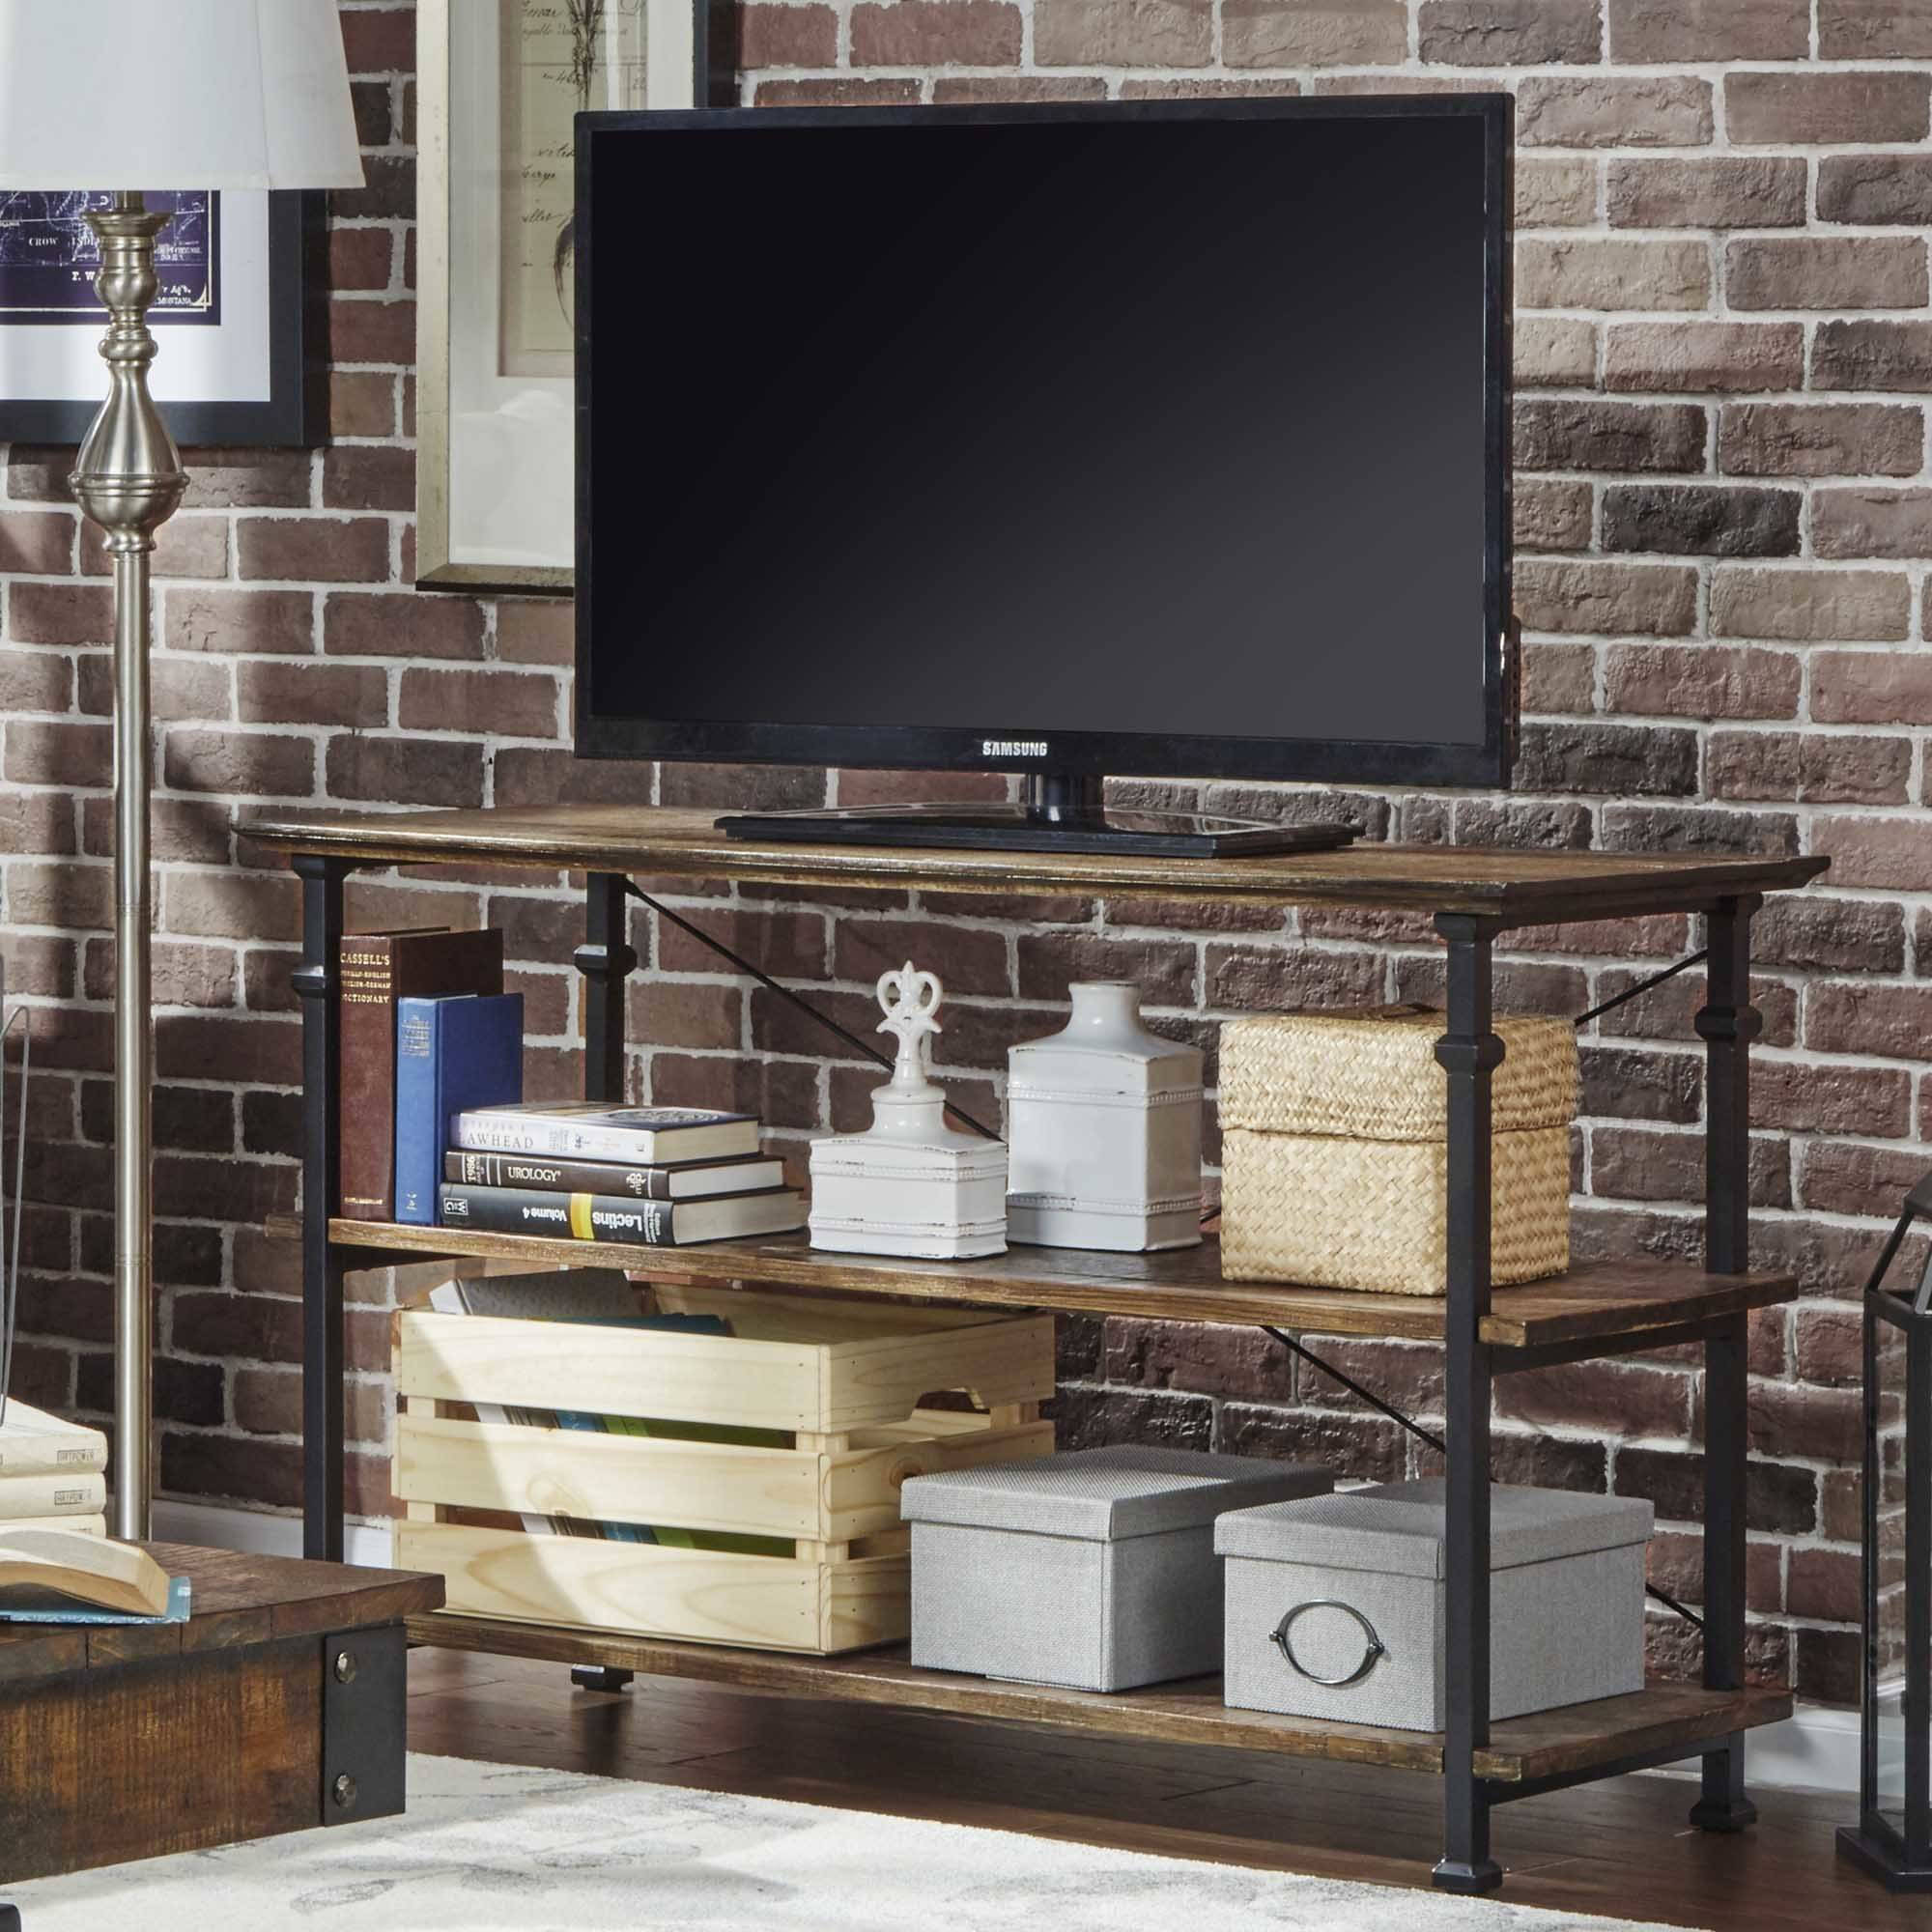 Weston Home Rustic Elegant Detailed Leg Storage Sofa Table TV Stand, Multiple Colors